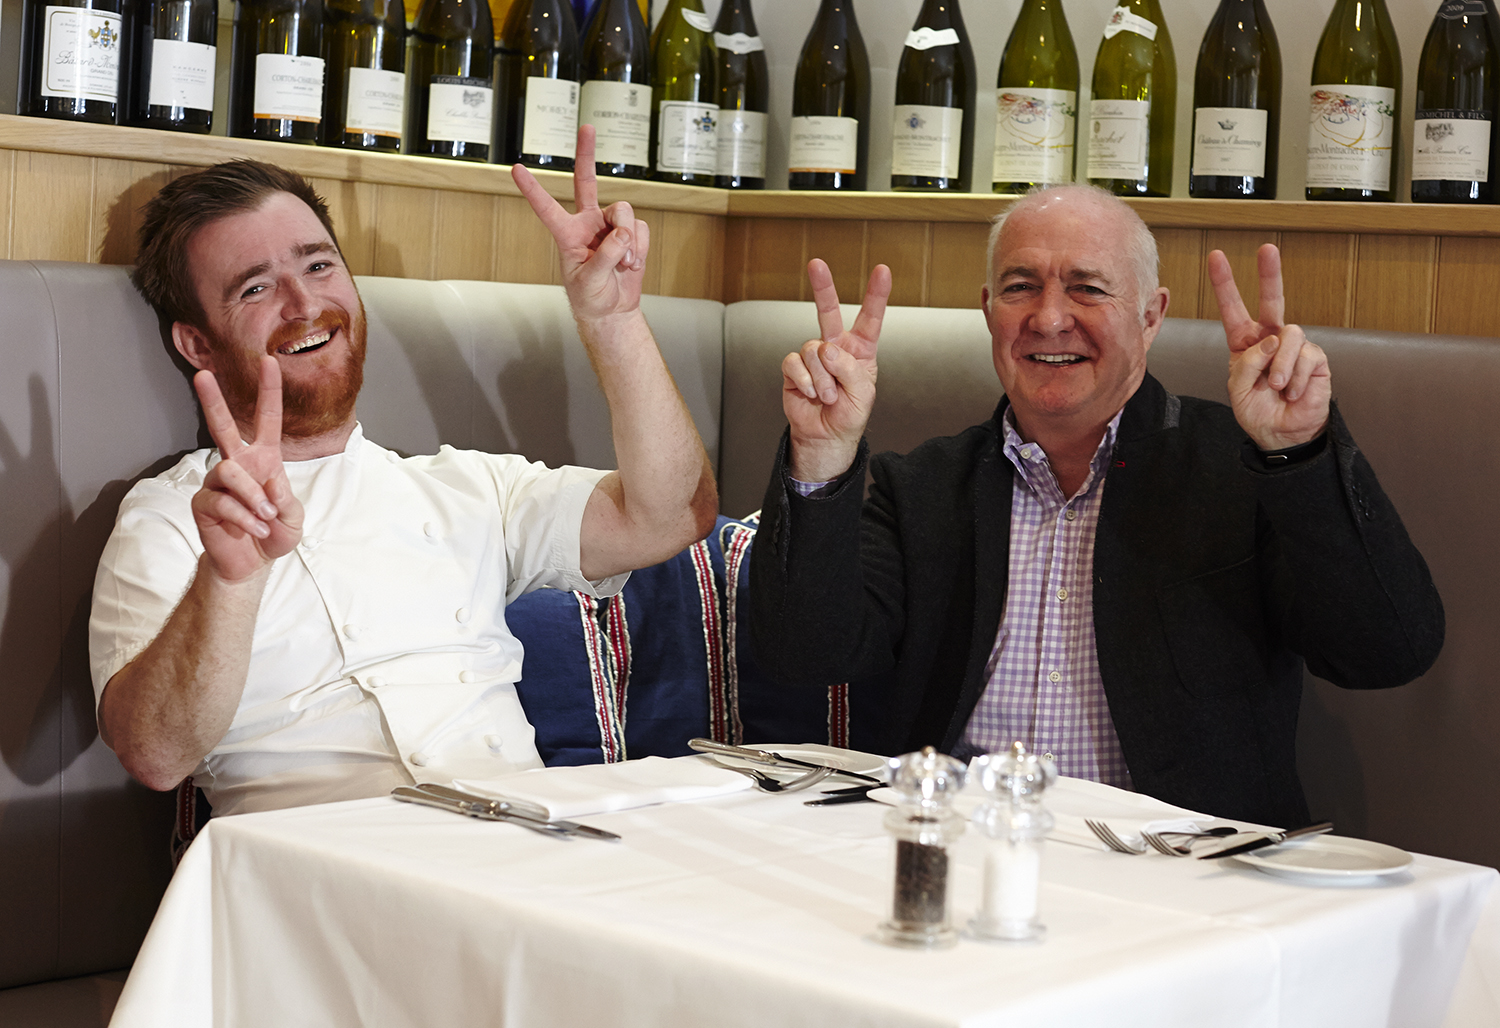 Rick Stein & The Seafood Restaurant 40th Anniversary feature in Delicious magazine 03